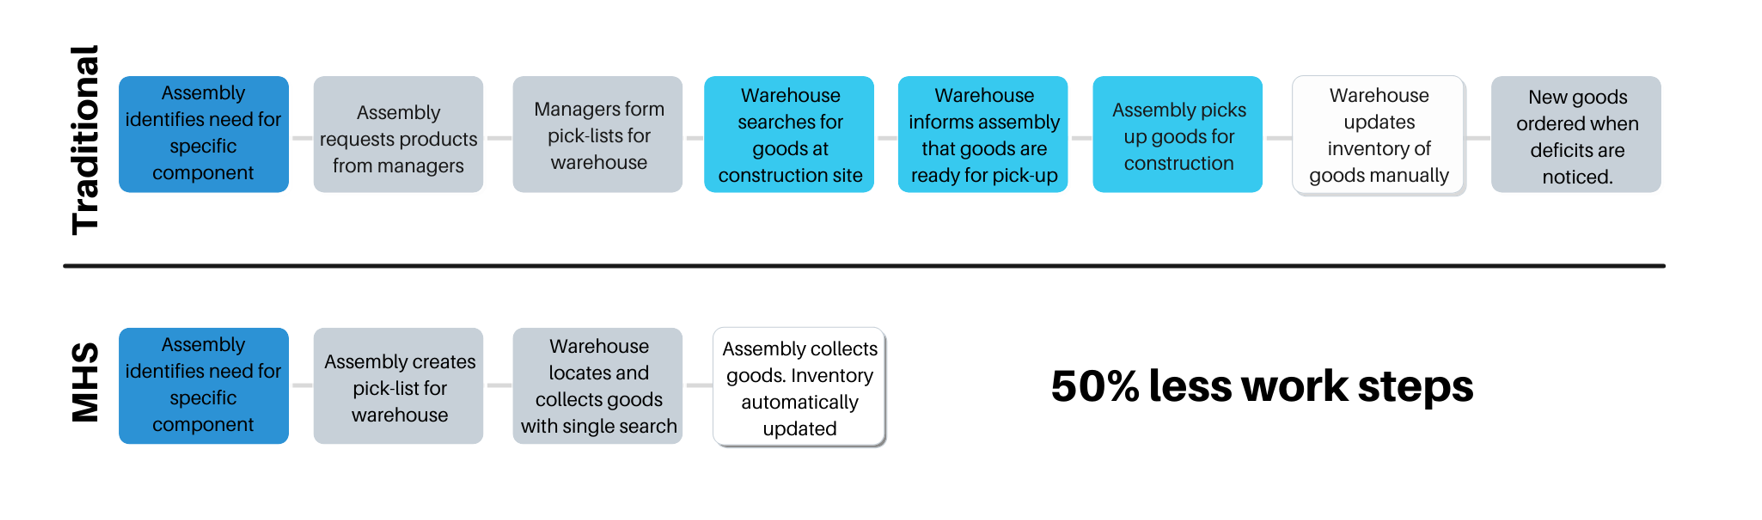 Locating goods for assembly at construction site